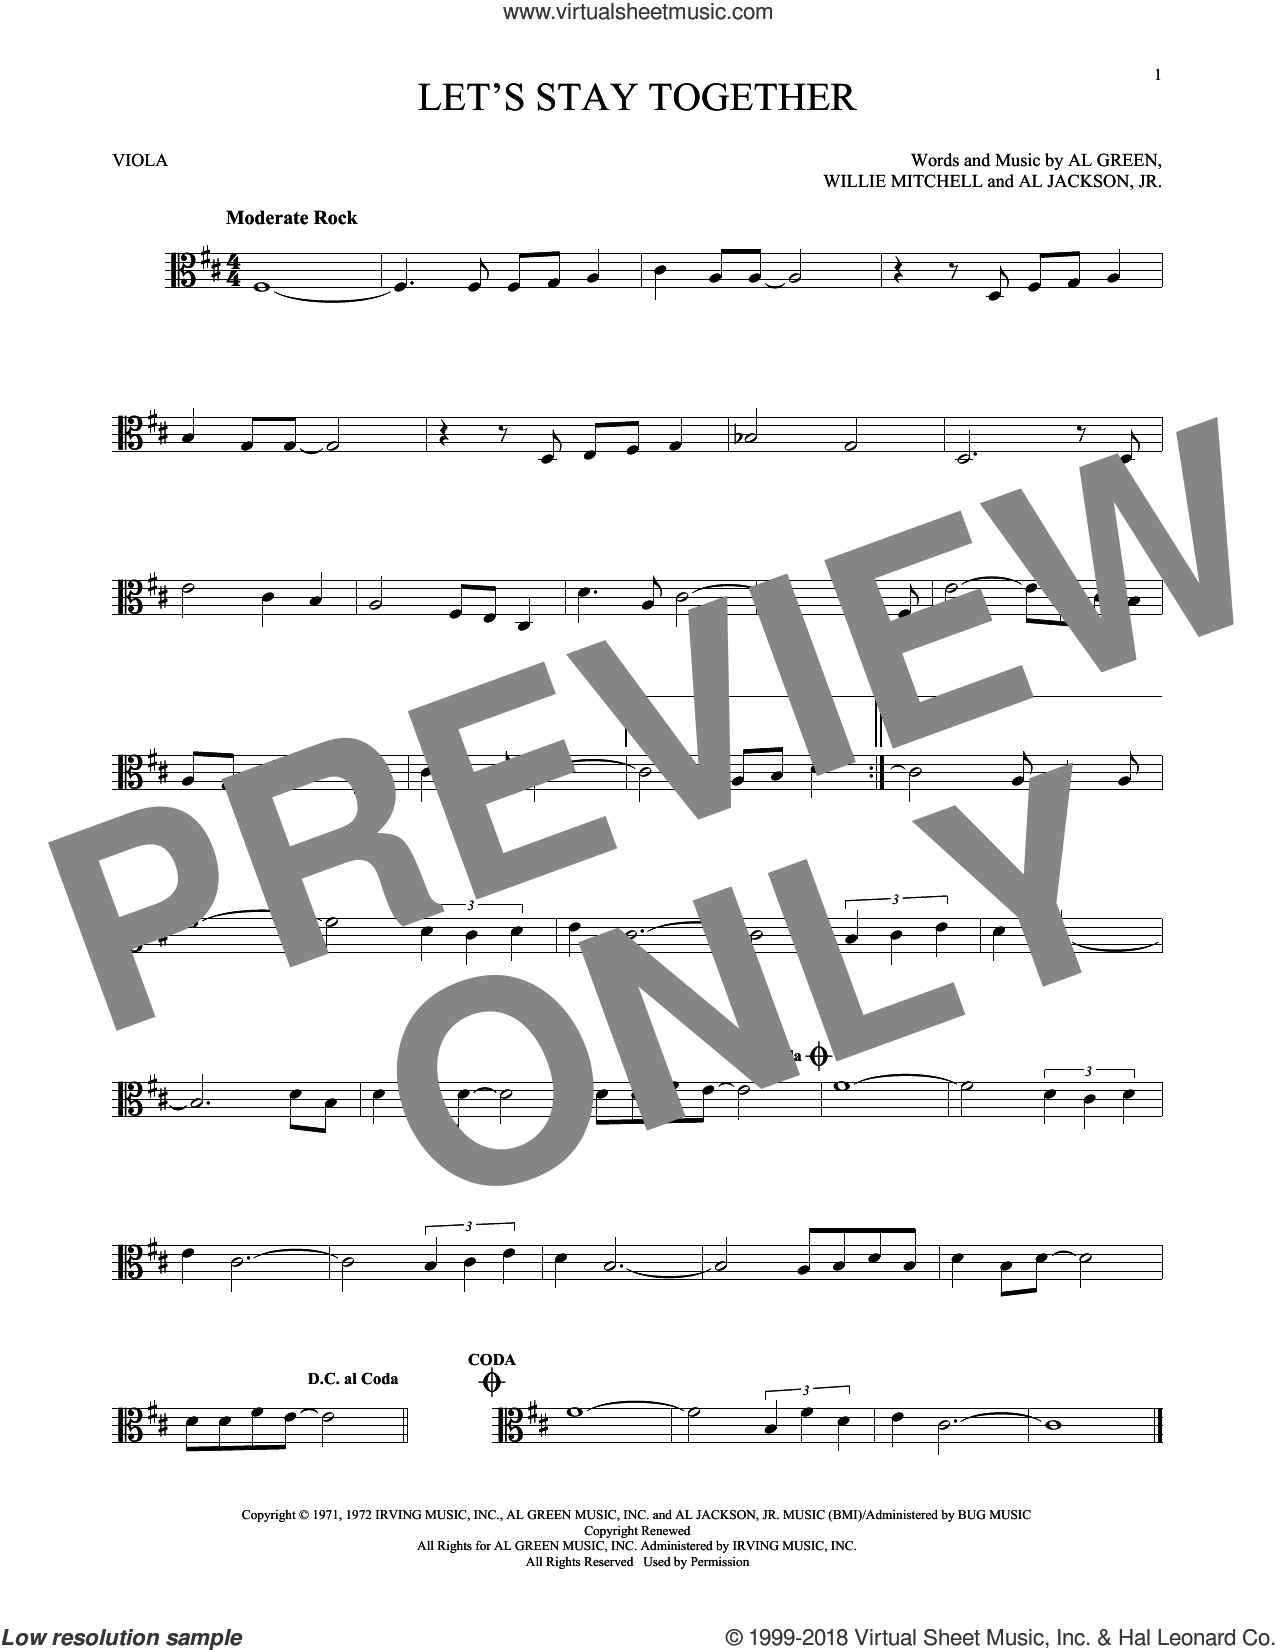 Let's Stay Together sheet music for viola solo by Al Green and Willie Mitchell. Score Image Preview.